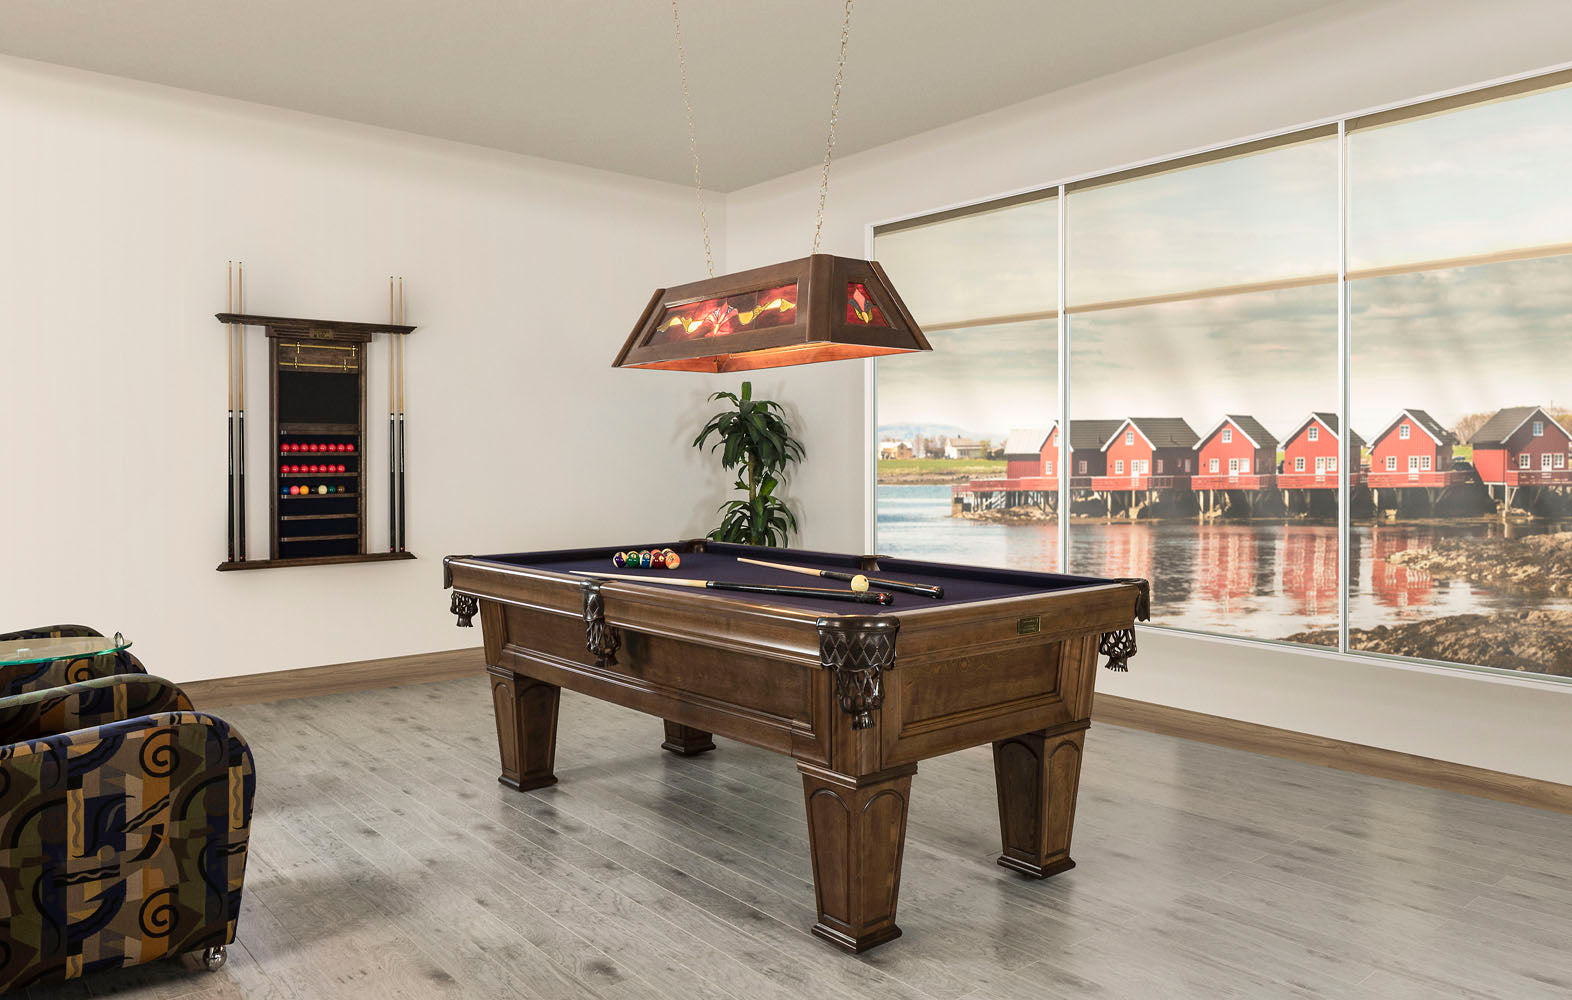 Tendance Pool Table